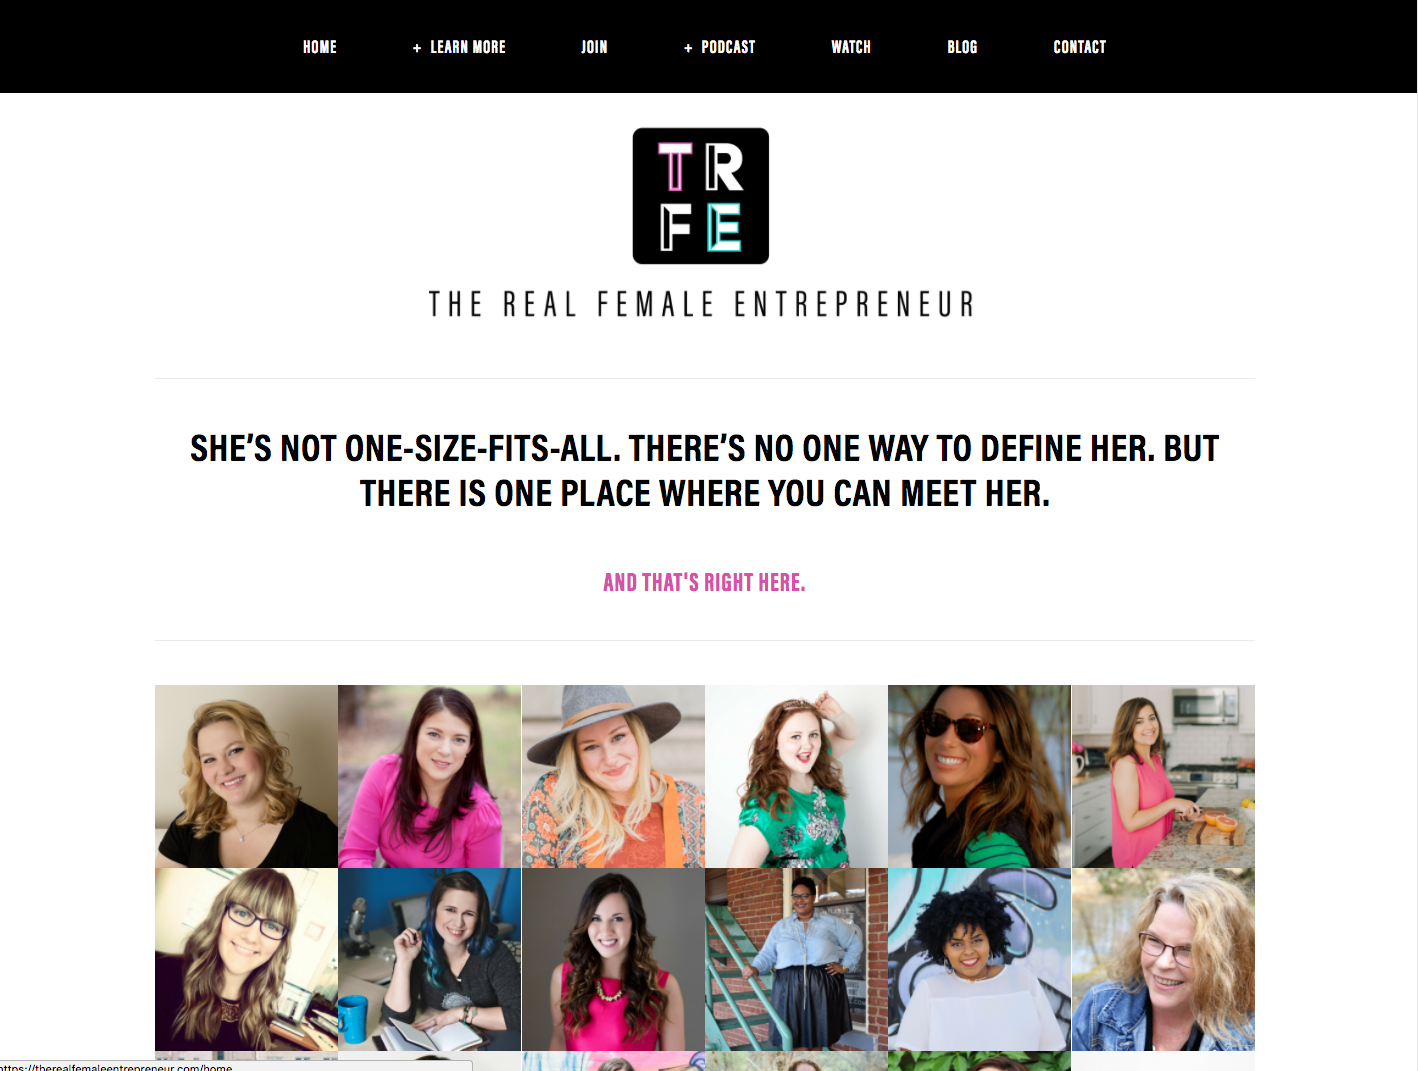 Simple website navigation from The Real Female Entrepreneur website